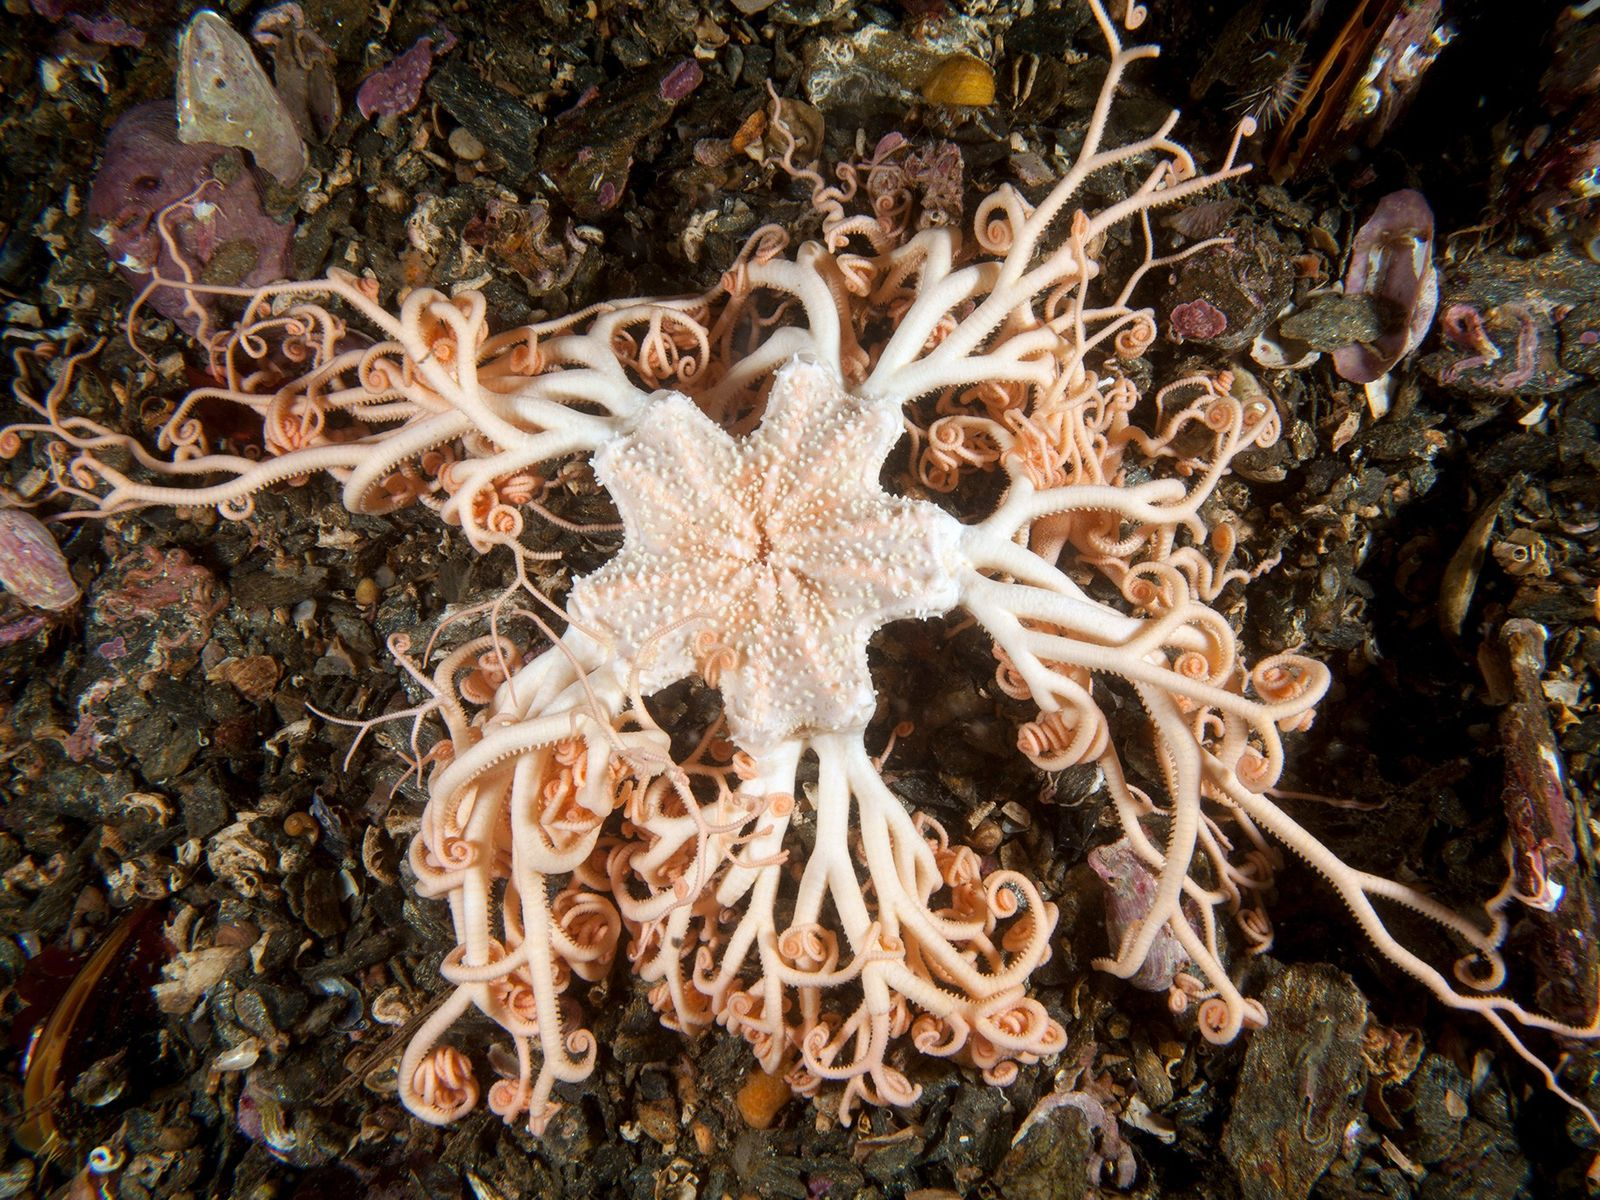 Gorgon's head sea stars have curly arms, each of which contains a spinal cord.